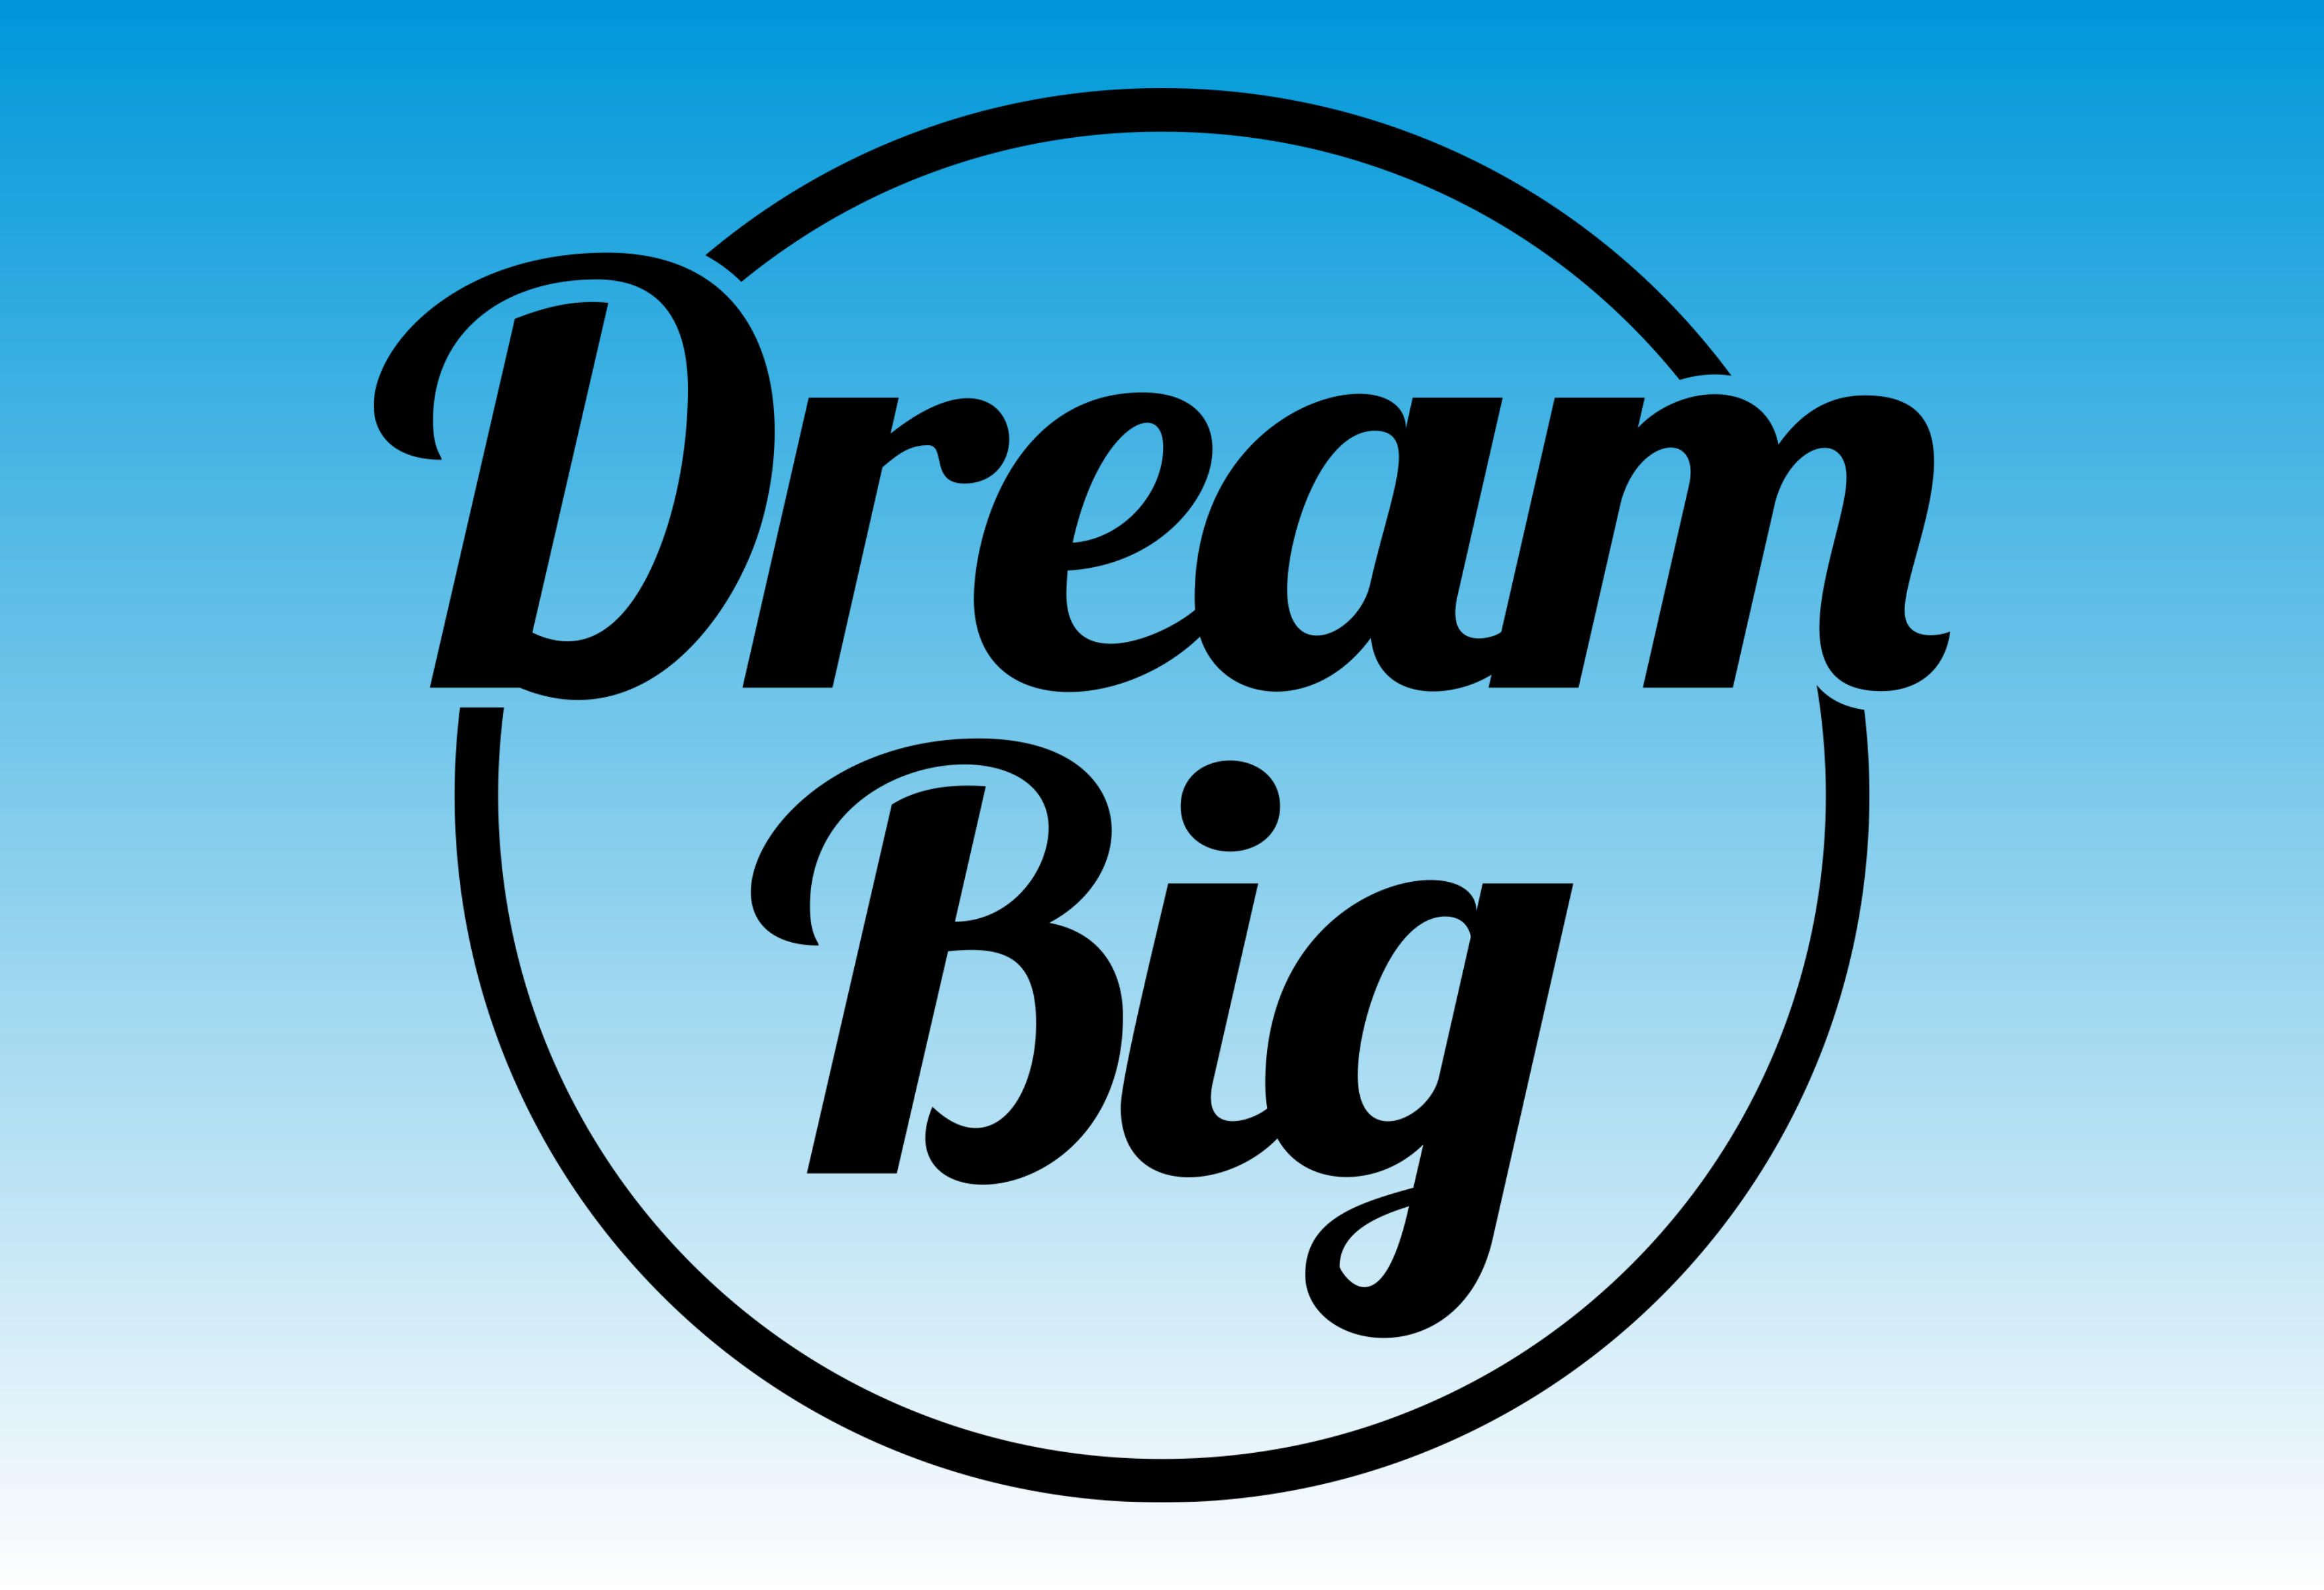 Download Free Dream Big Graphic By Designclusters Creative Fabrica for Cricut Explore, Silhouette and other cutting machines.